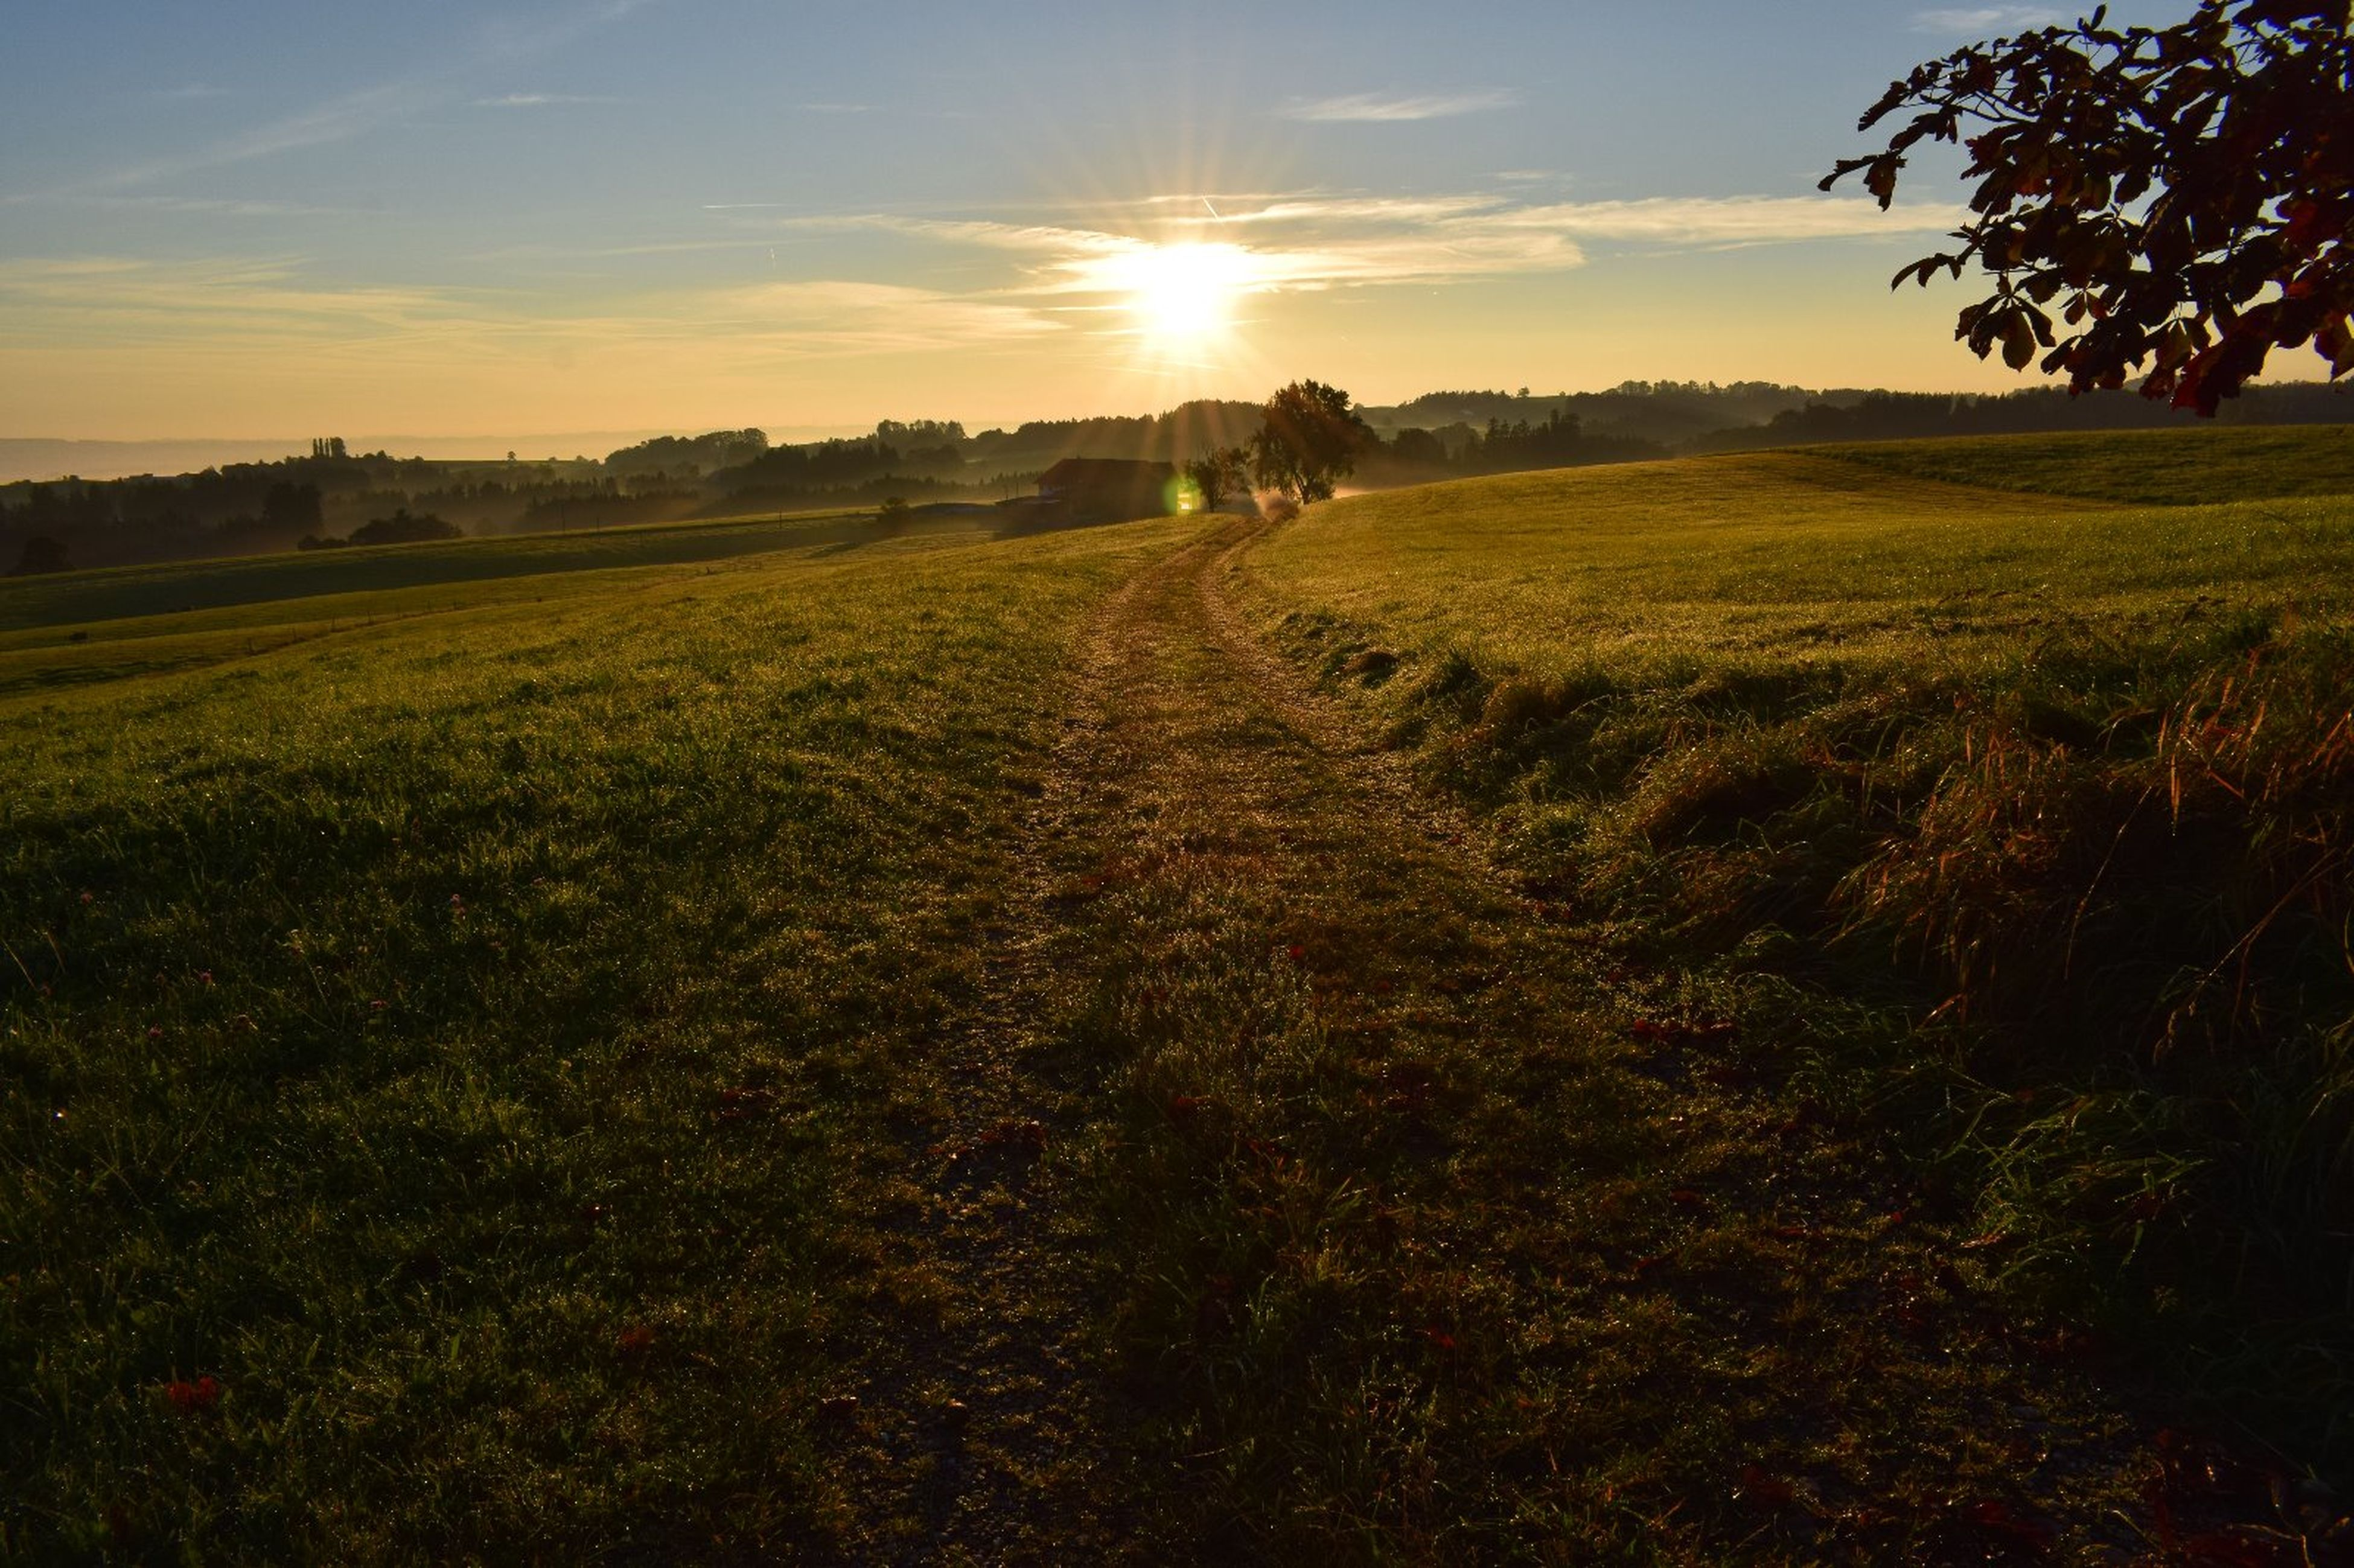 sunset, sun, sunlight, landscape, tranquil scene, grass, tranquility, tree, field, green color, sunbeam, beauty in nature, scenics, lens flare, nature, sky, rural scene, farm, distant, person, non-urban scene, sunrise - dawn, outdoors, vibrant color, agriculture, atmosphere, back lit, remote